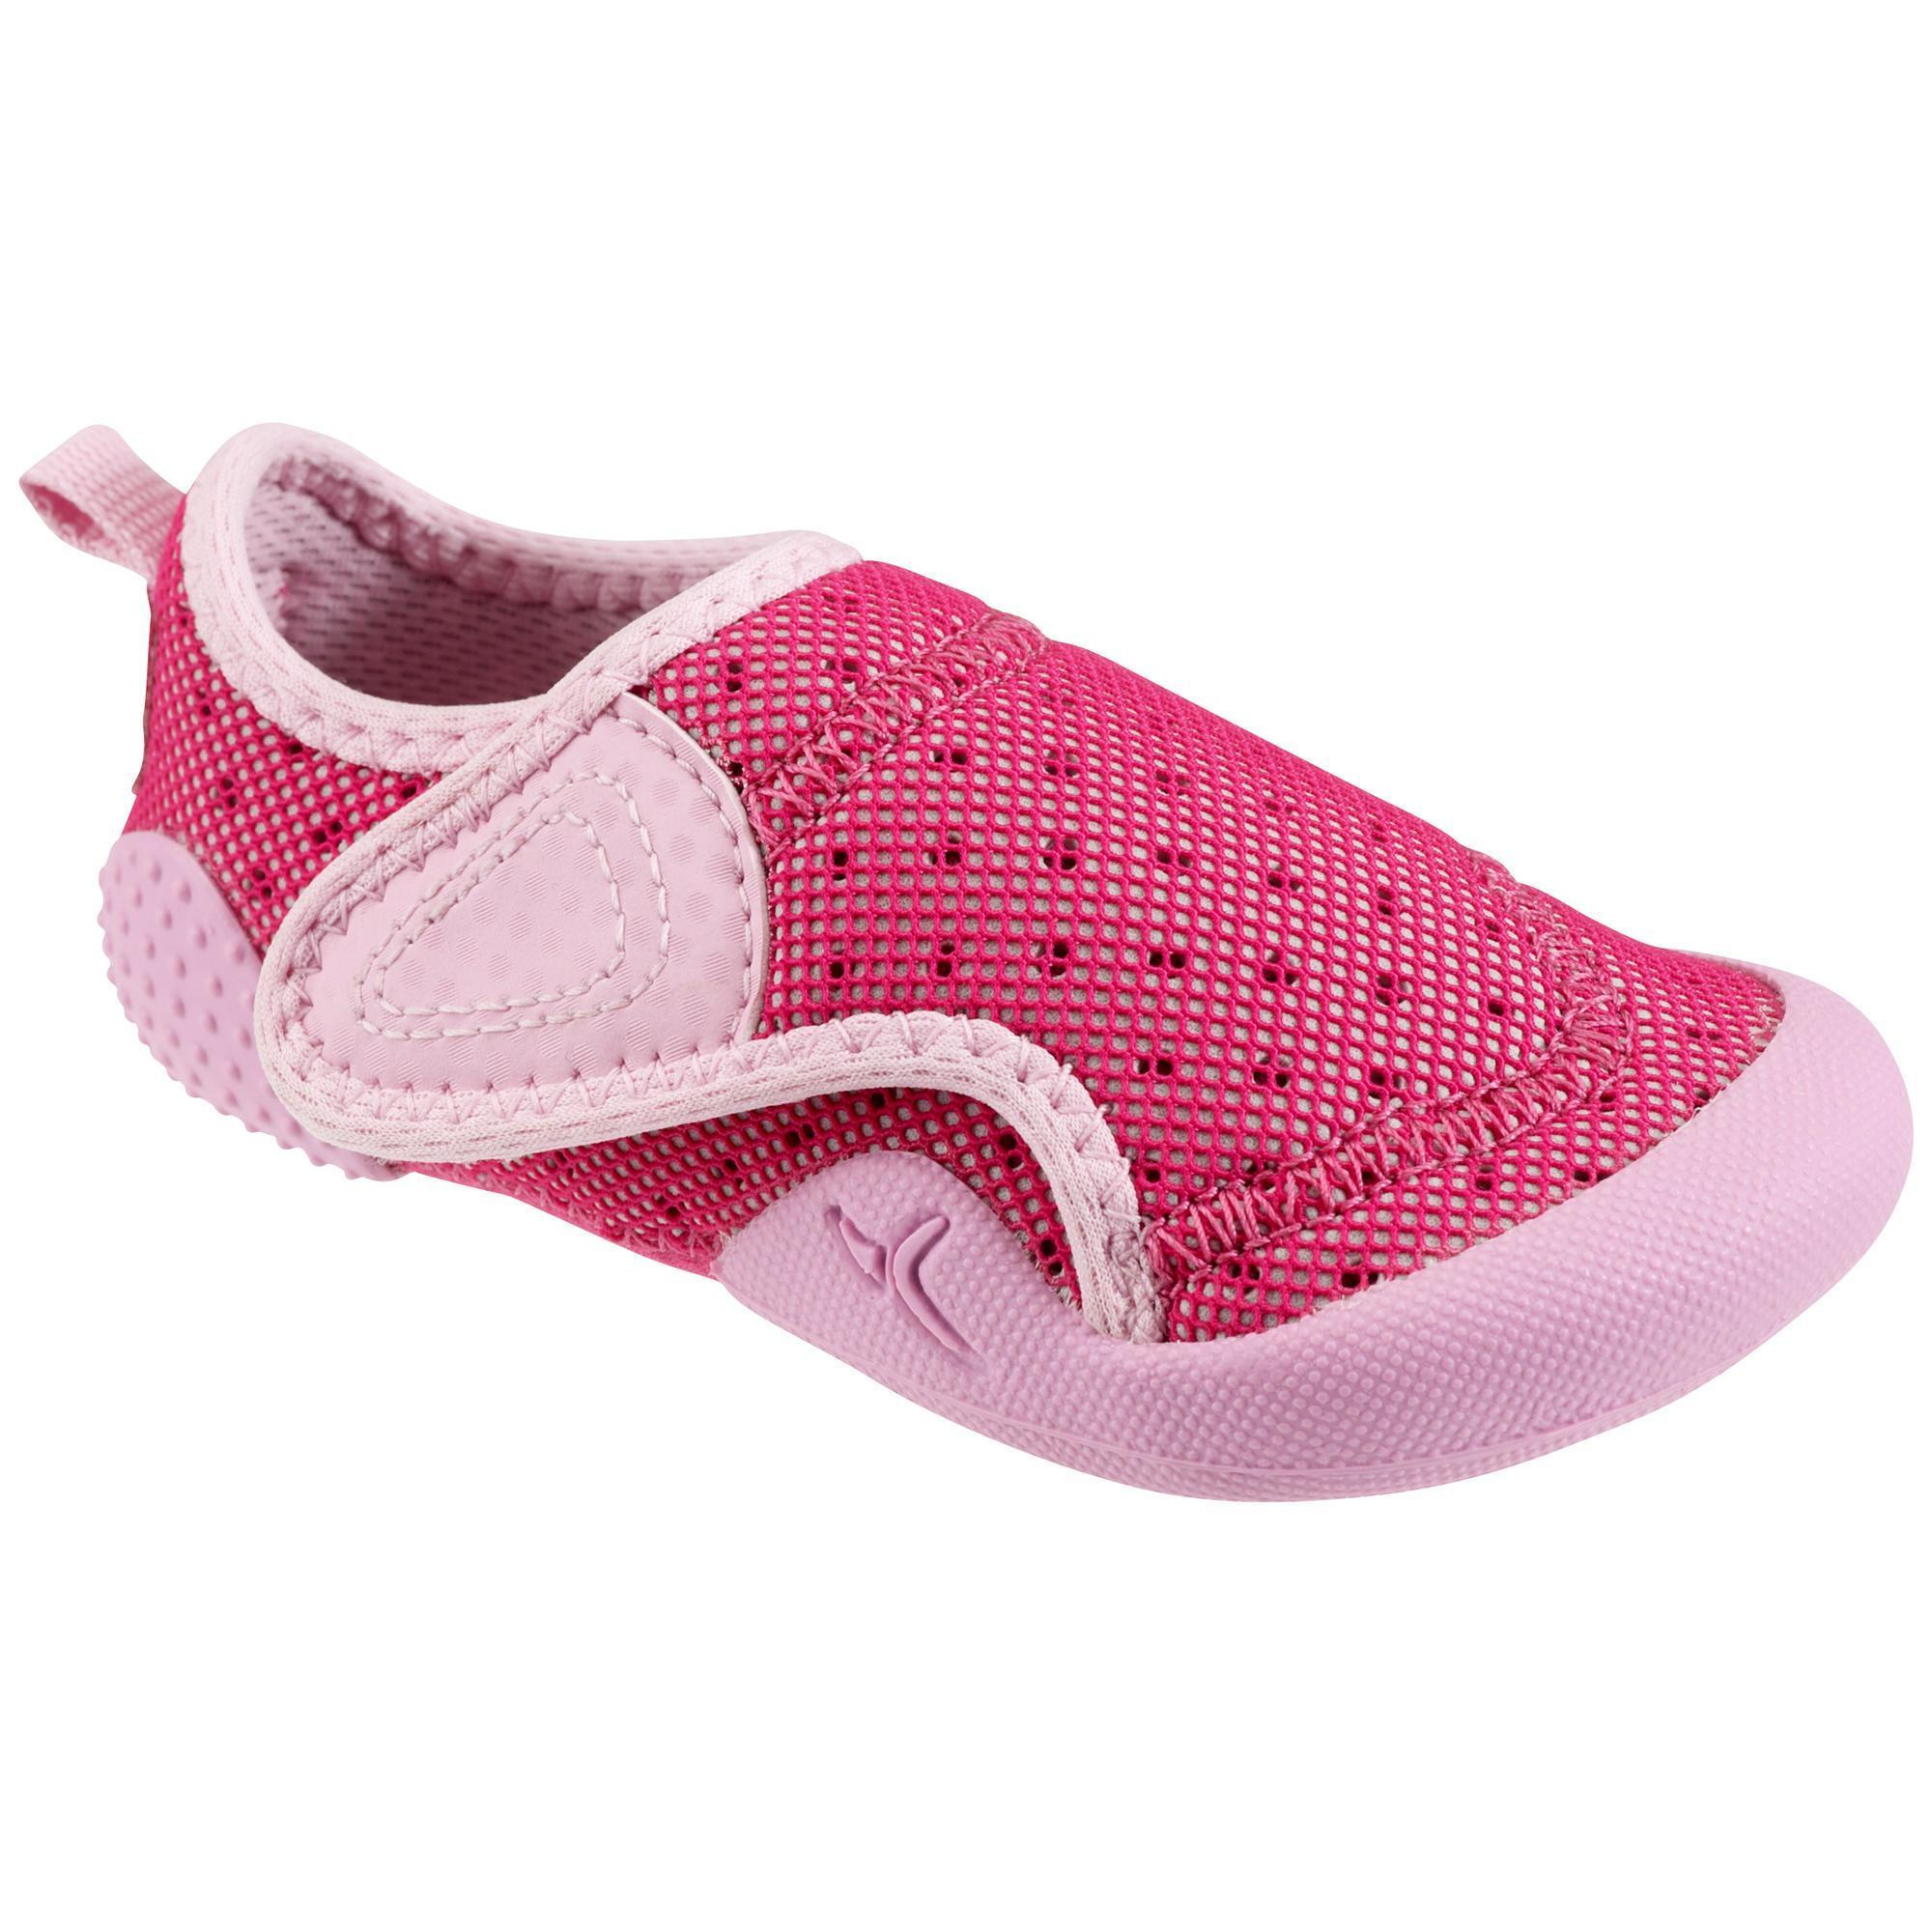 chaussons b b gym babylight rose fuschia domyos by decathlon. Black Bedroom Furniture Sets. Home Design Ideas